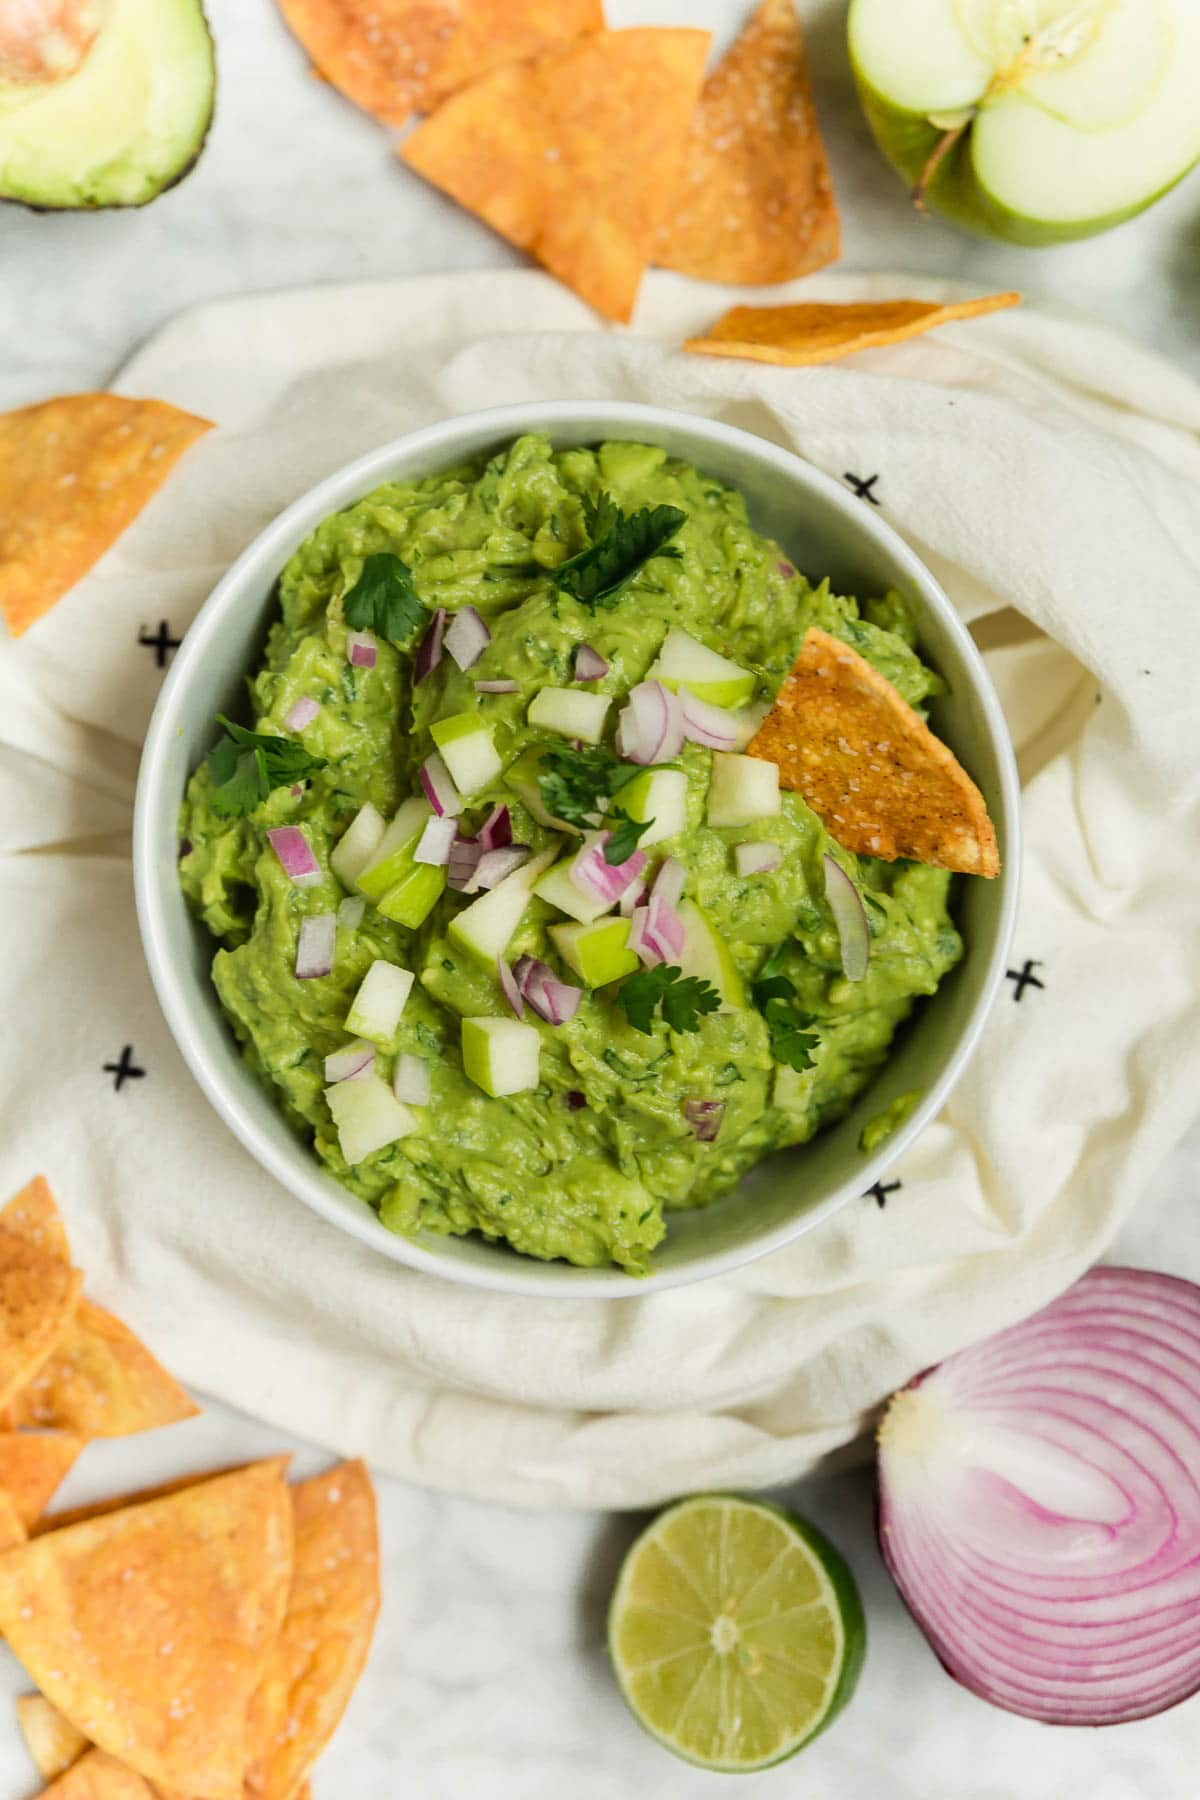 A bowl of green apple guacamole with baked tortilla chips, red onion, and limes.